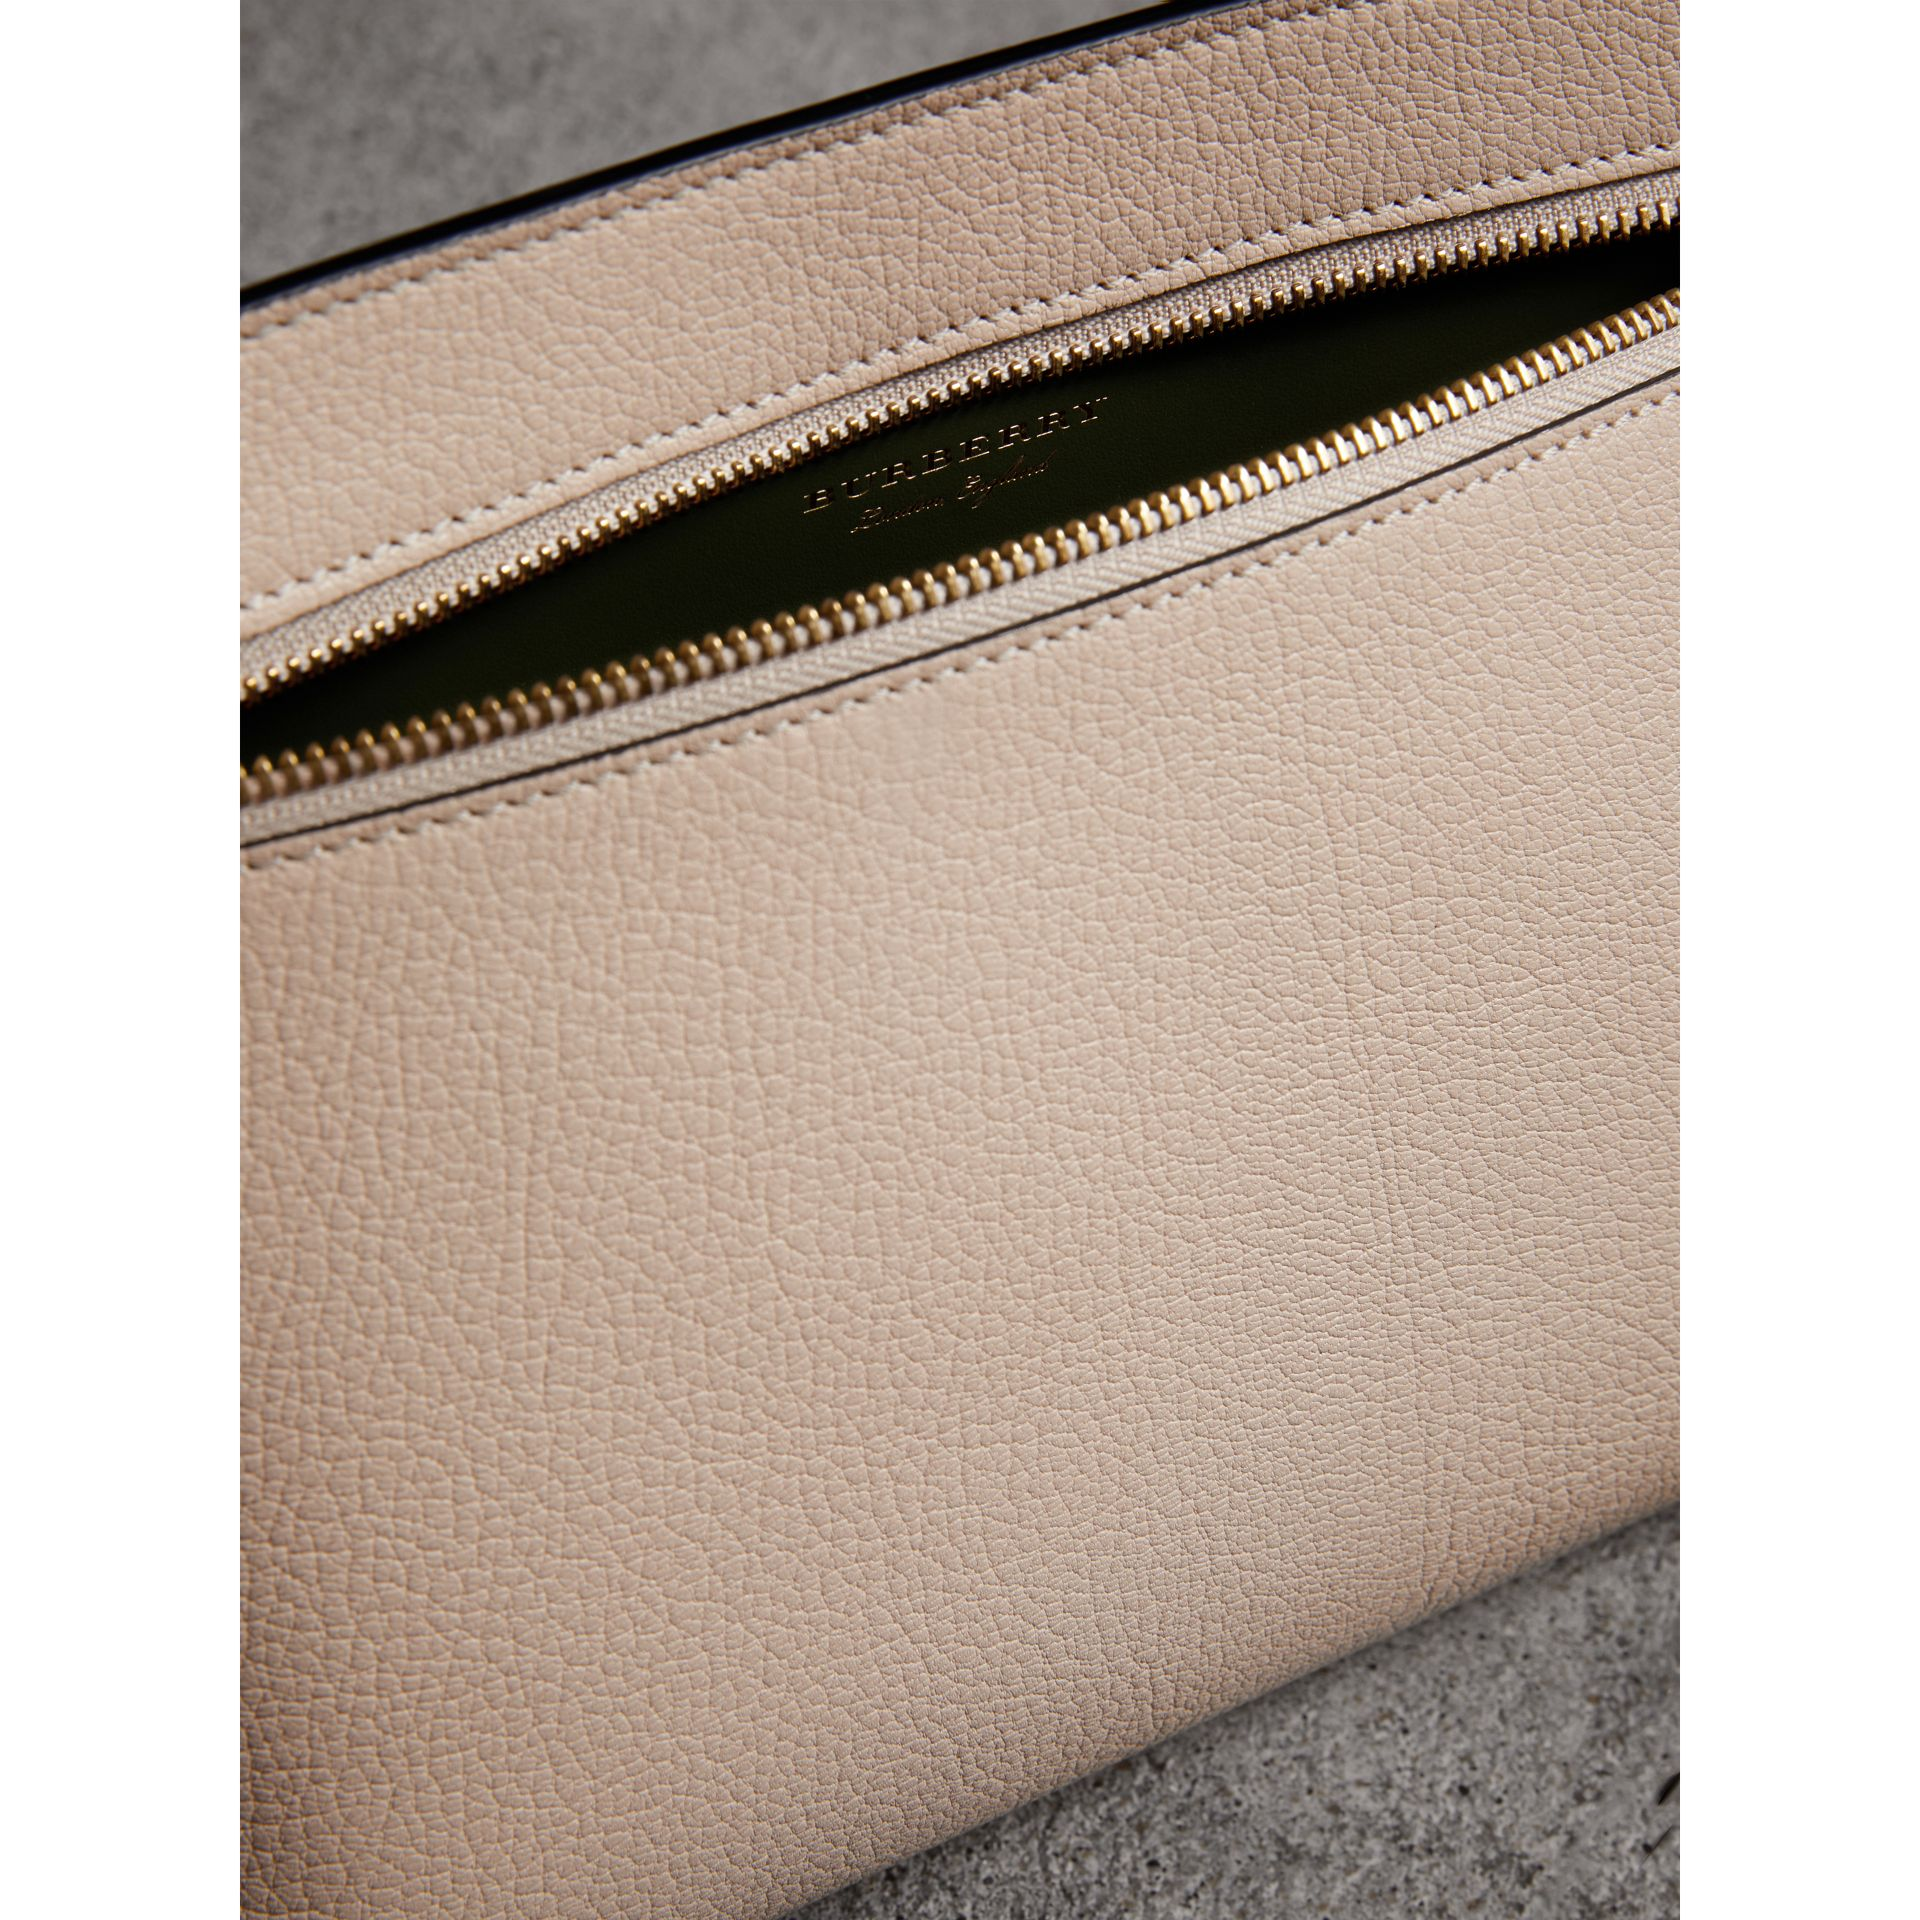 Grainy Leather Wristlet Clutch in Stone - Women | Burberry - gallery image 6